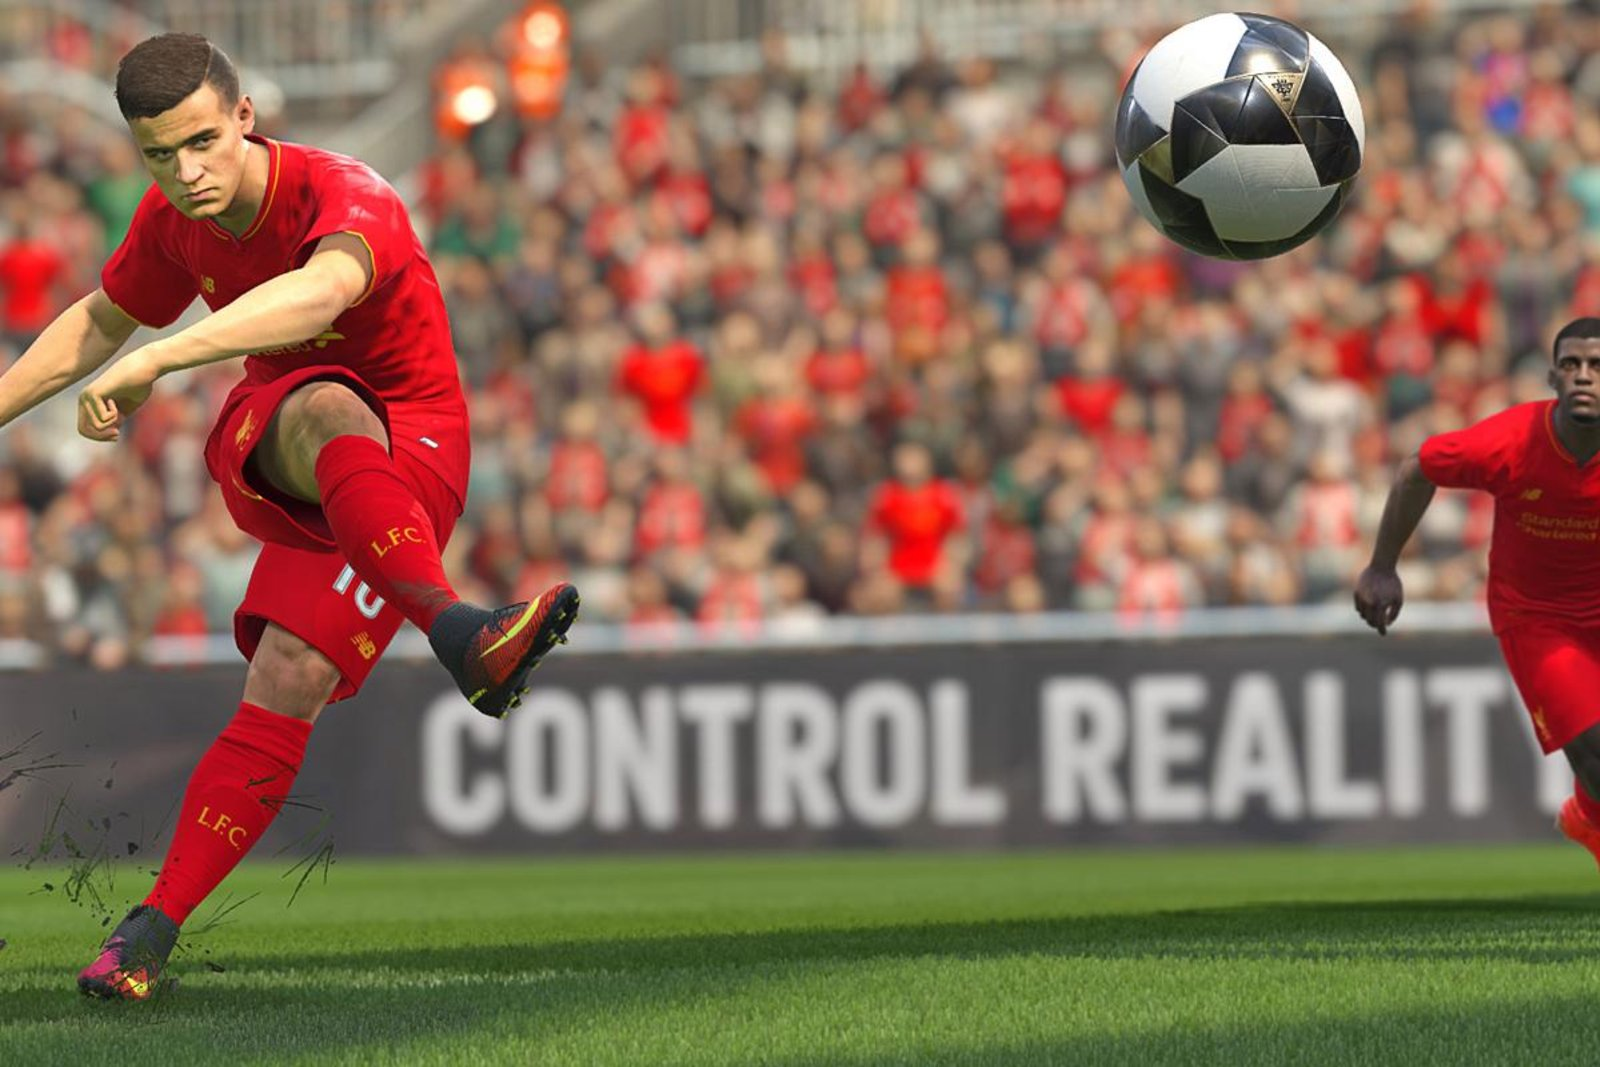 liverpool-player-felipe-coutinho-shown-in-the-new-pes-2017-video-game